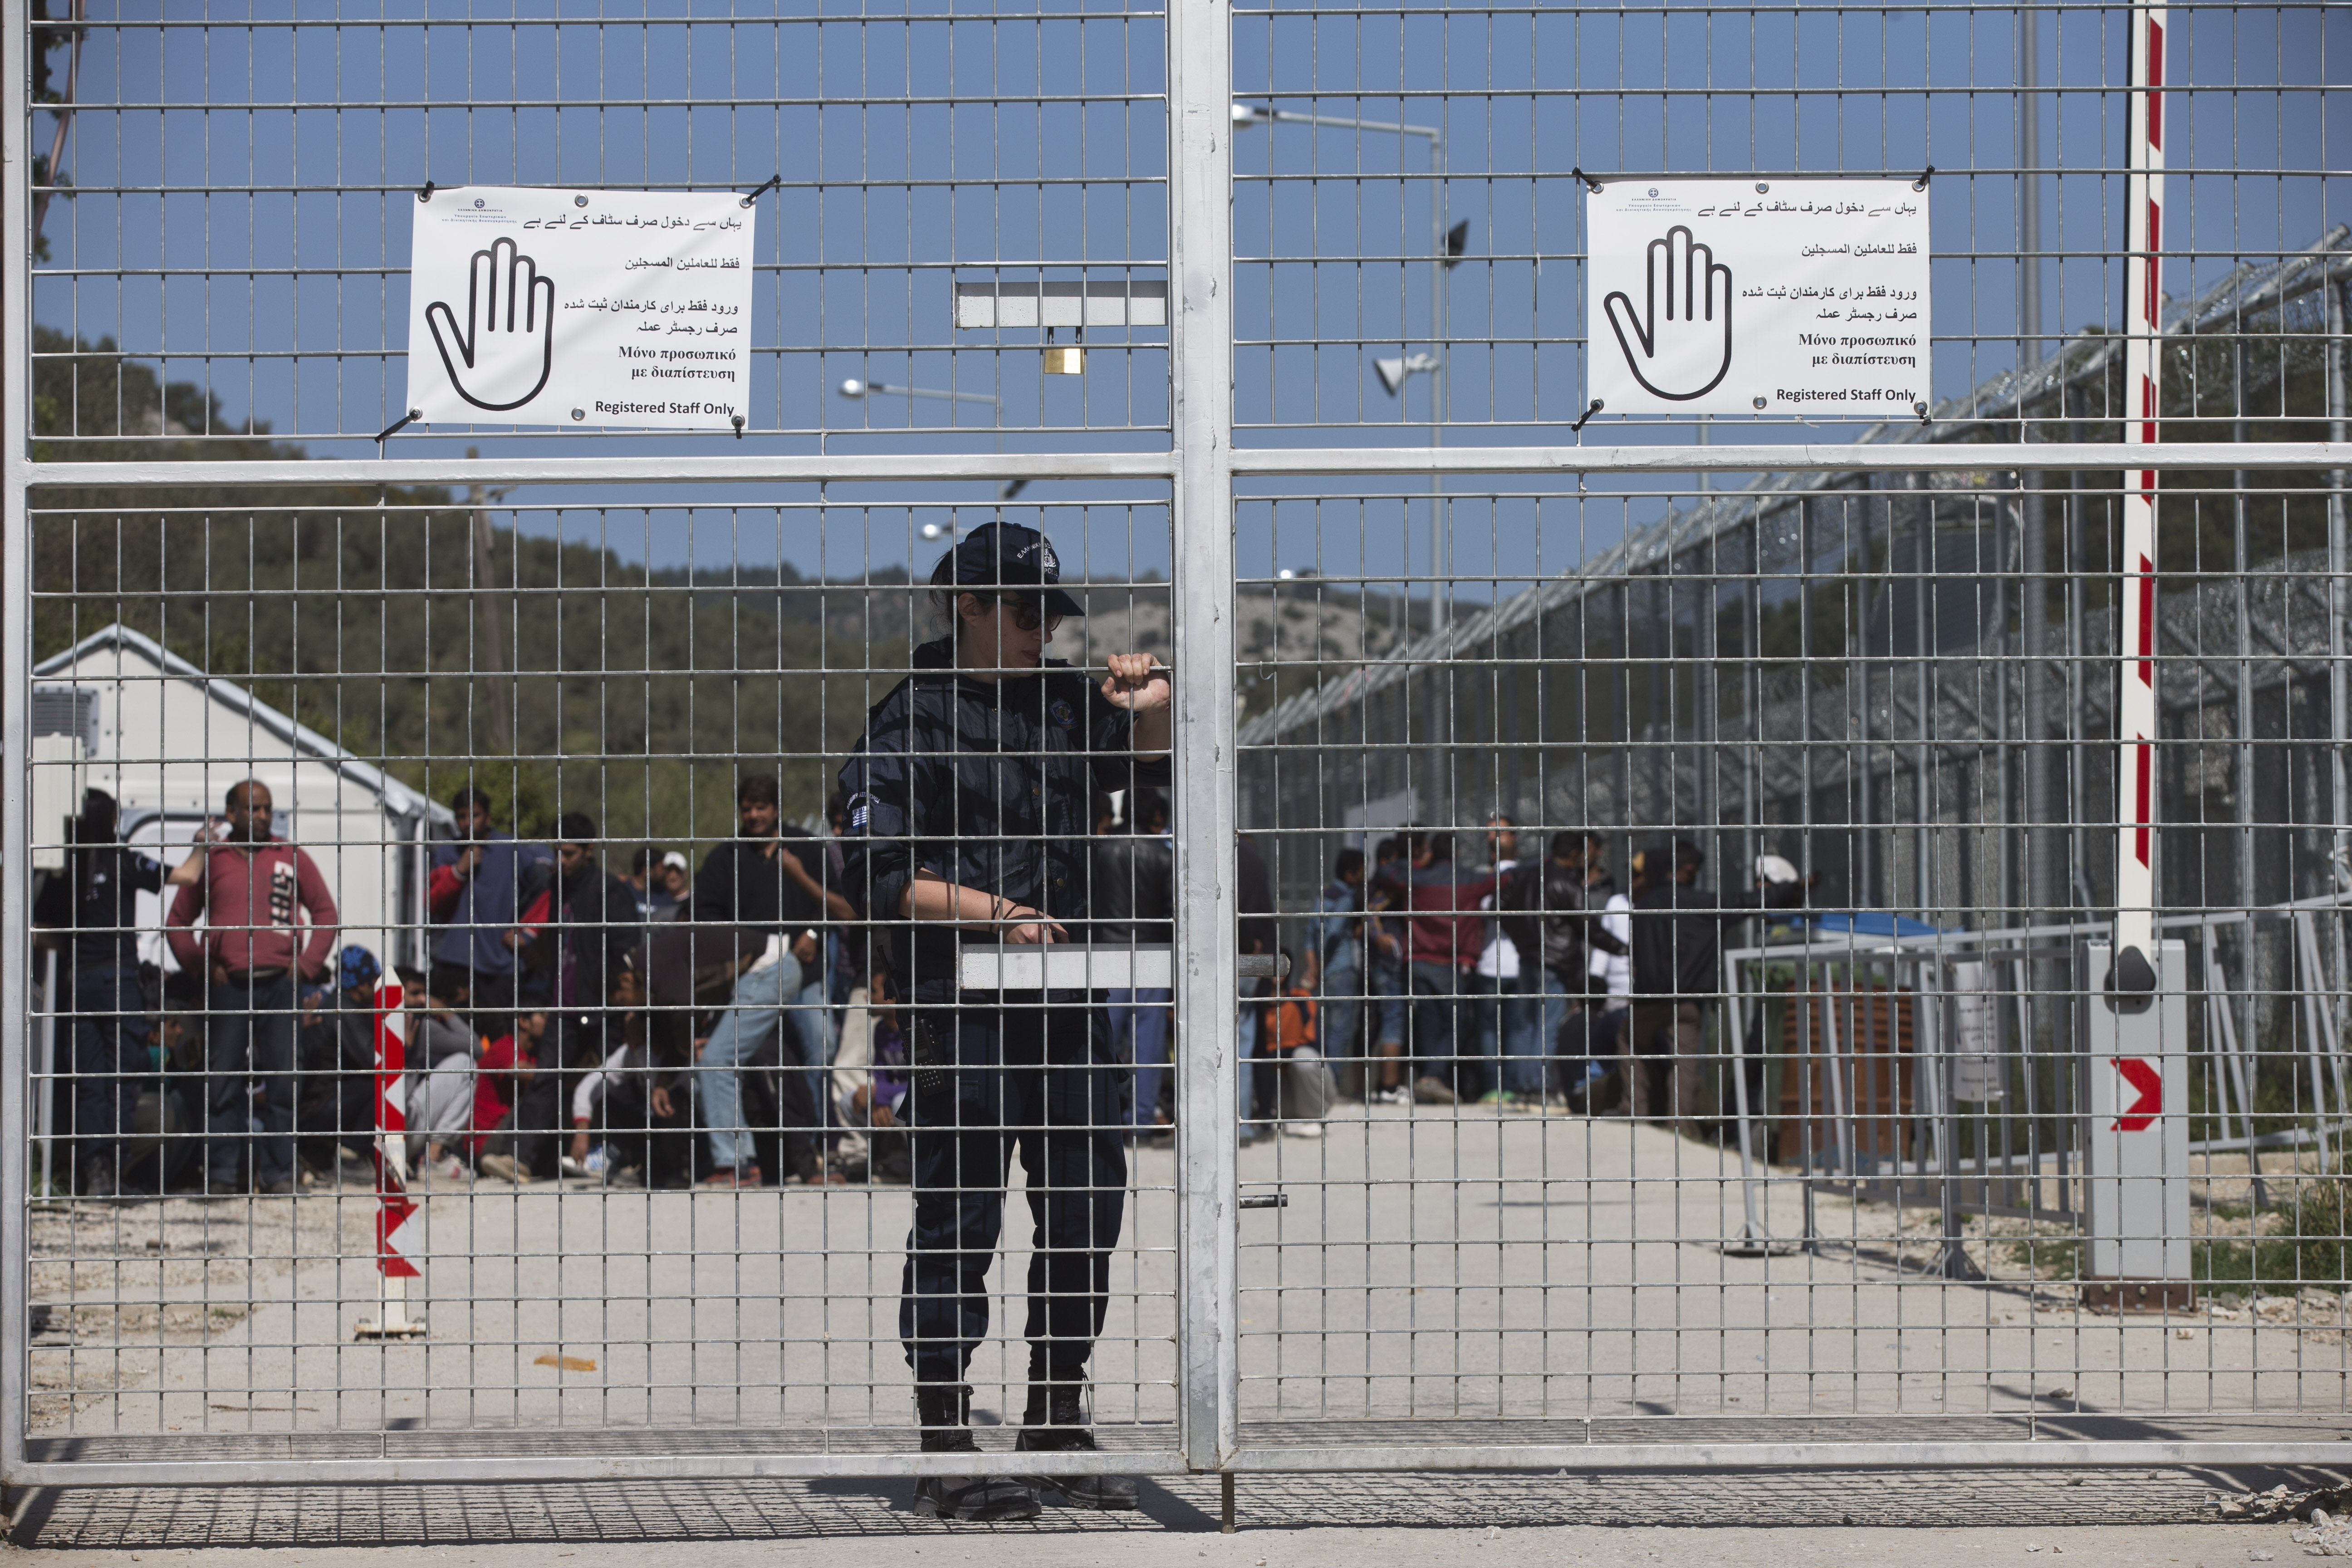 Greece: Emergency powers to build migrant detention camps